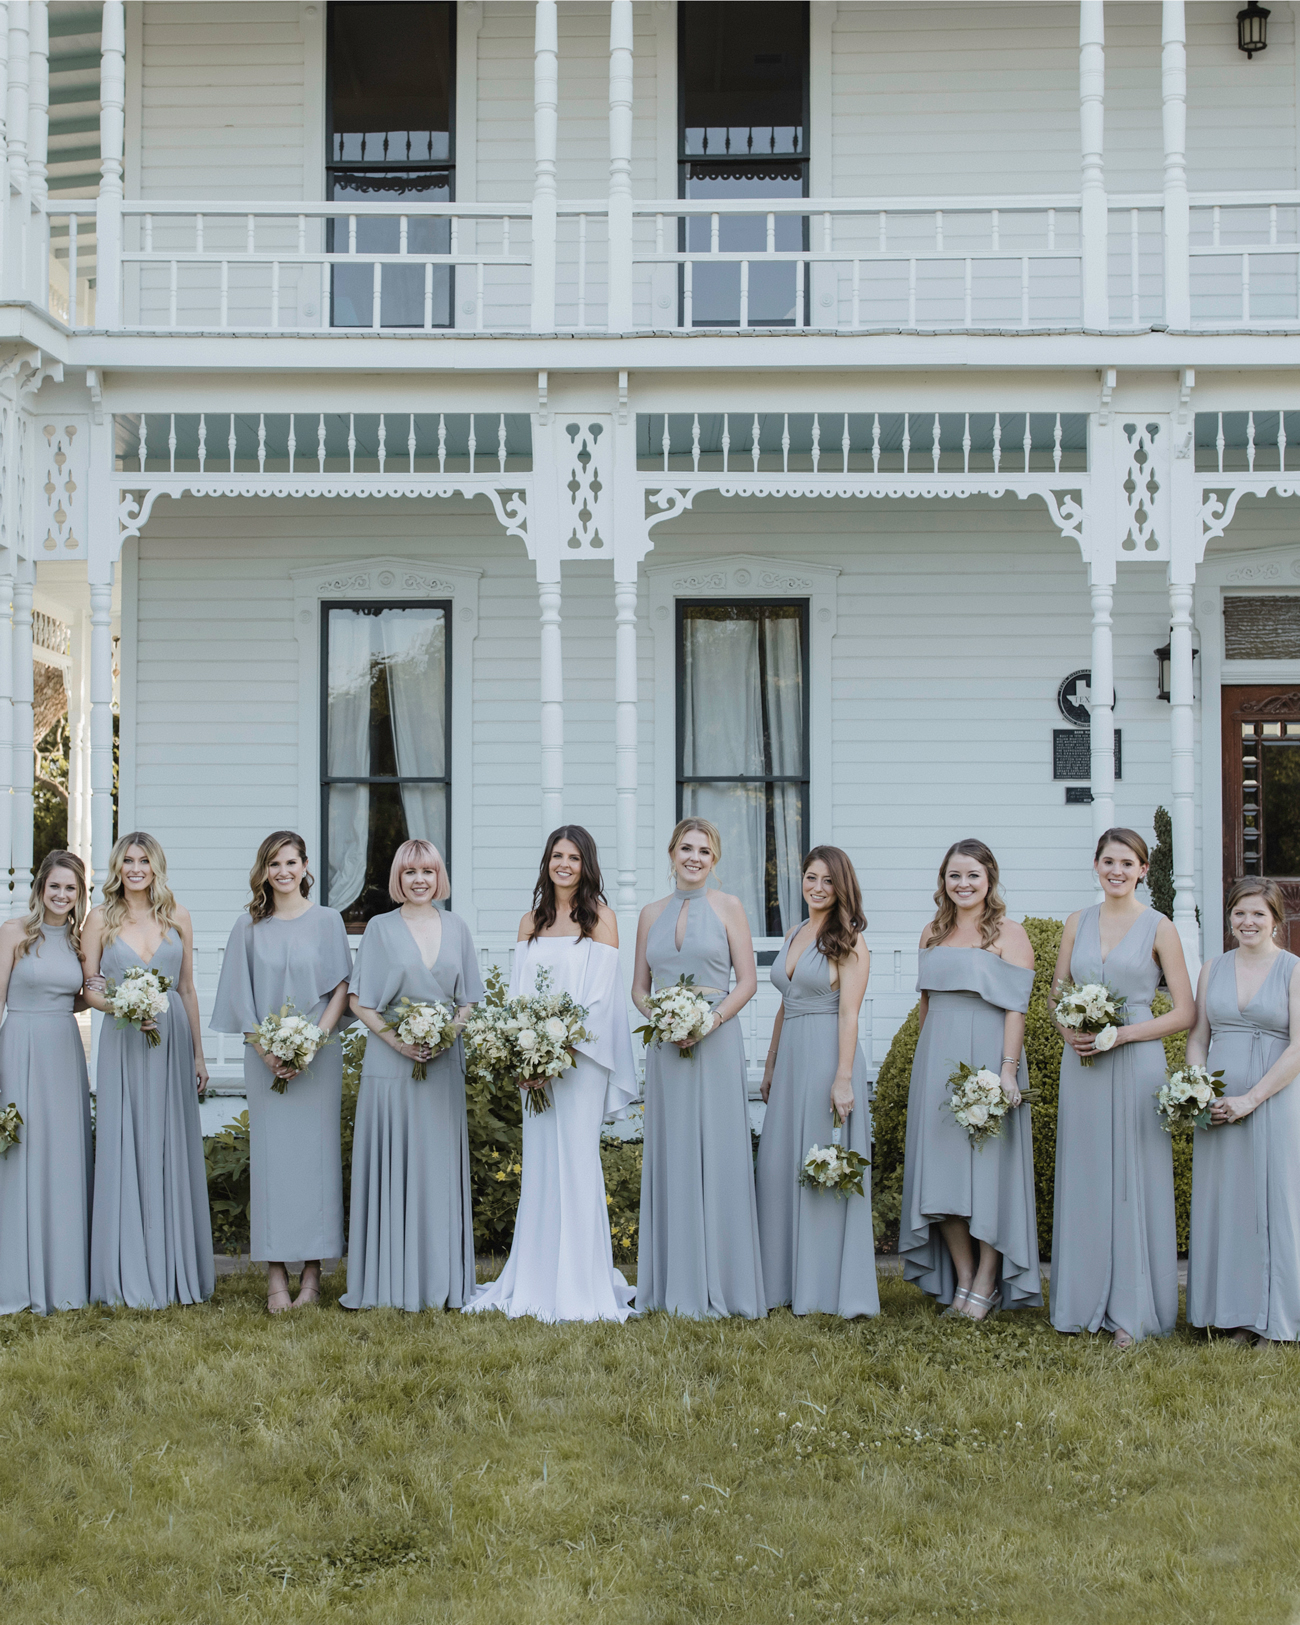 bride with bridesmaids in various style gray dresses